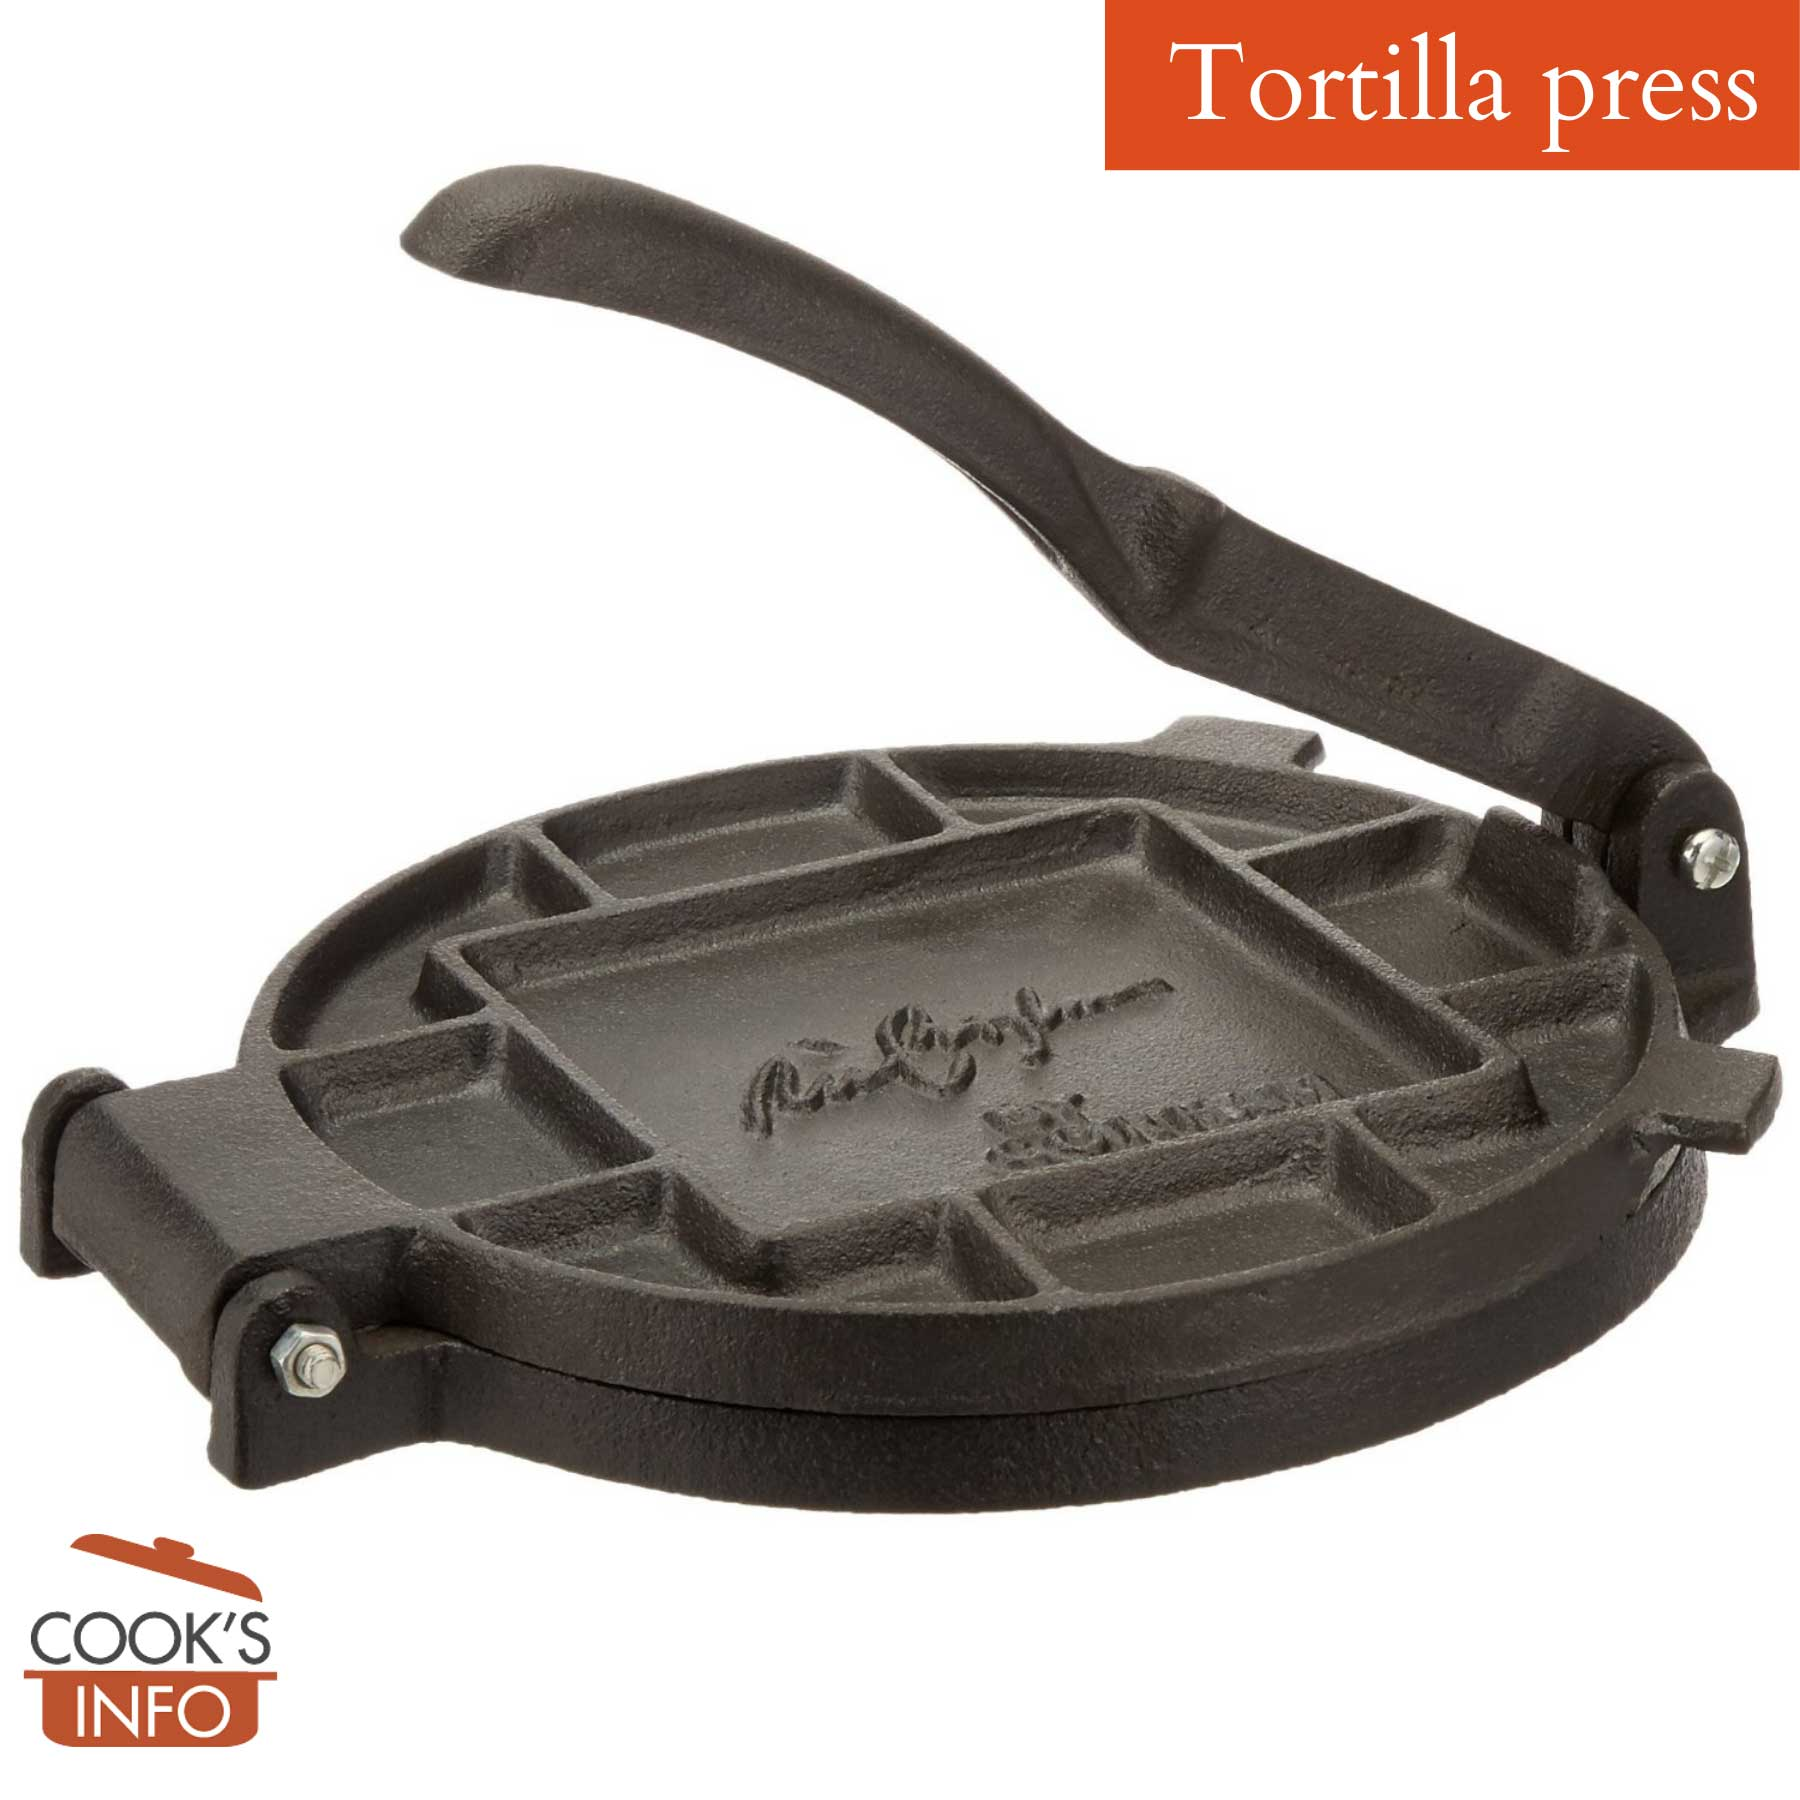 Cast iron tortilla press, Ricky Bayless model